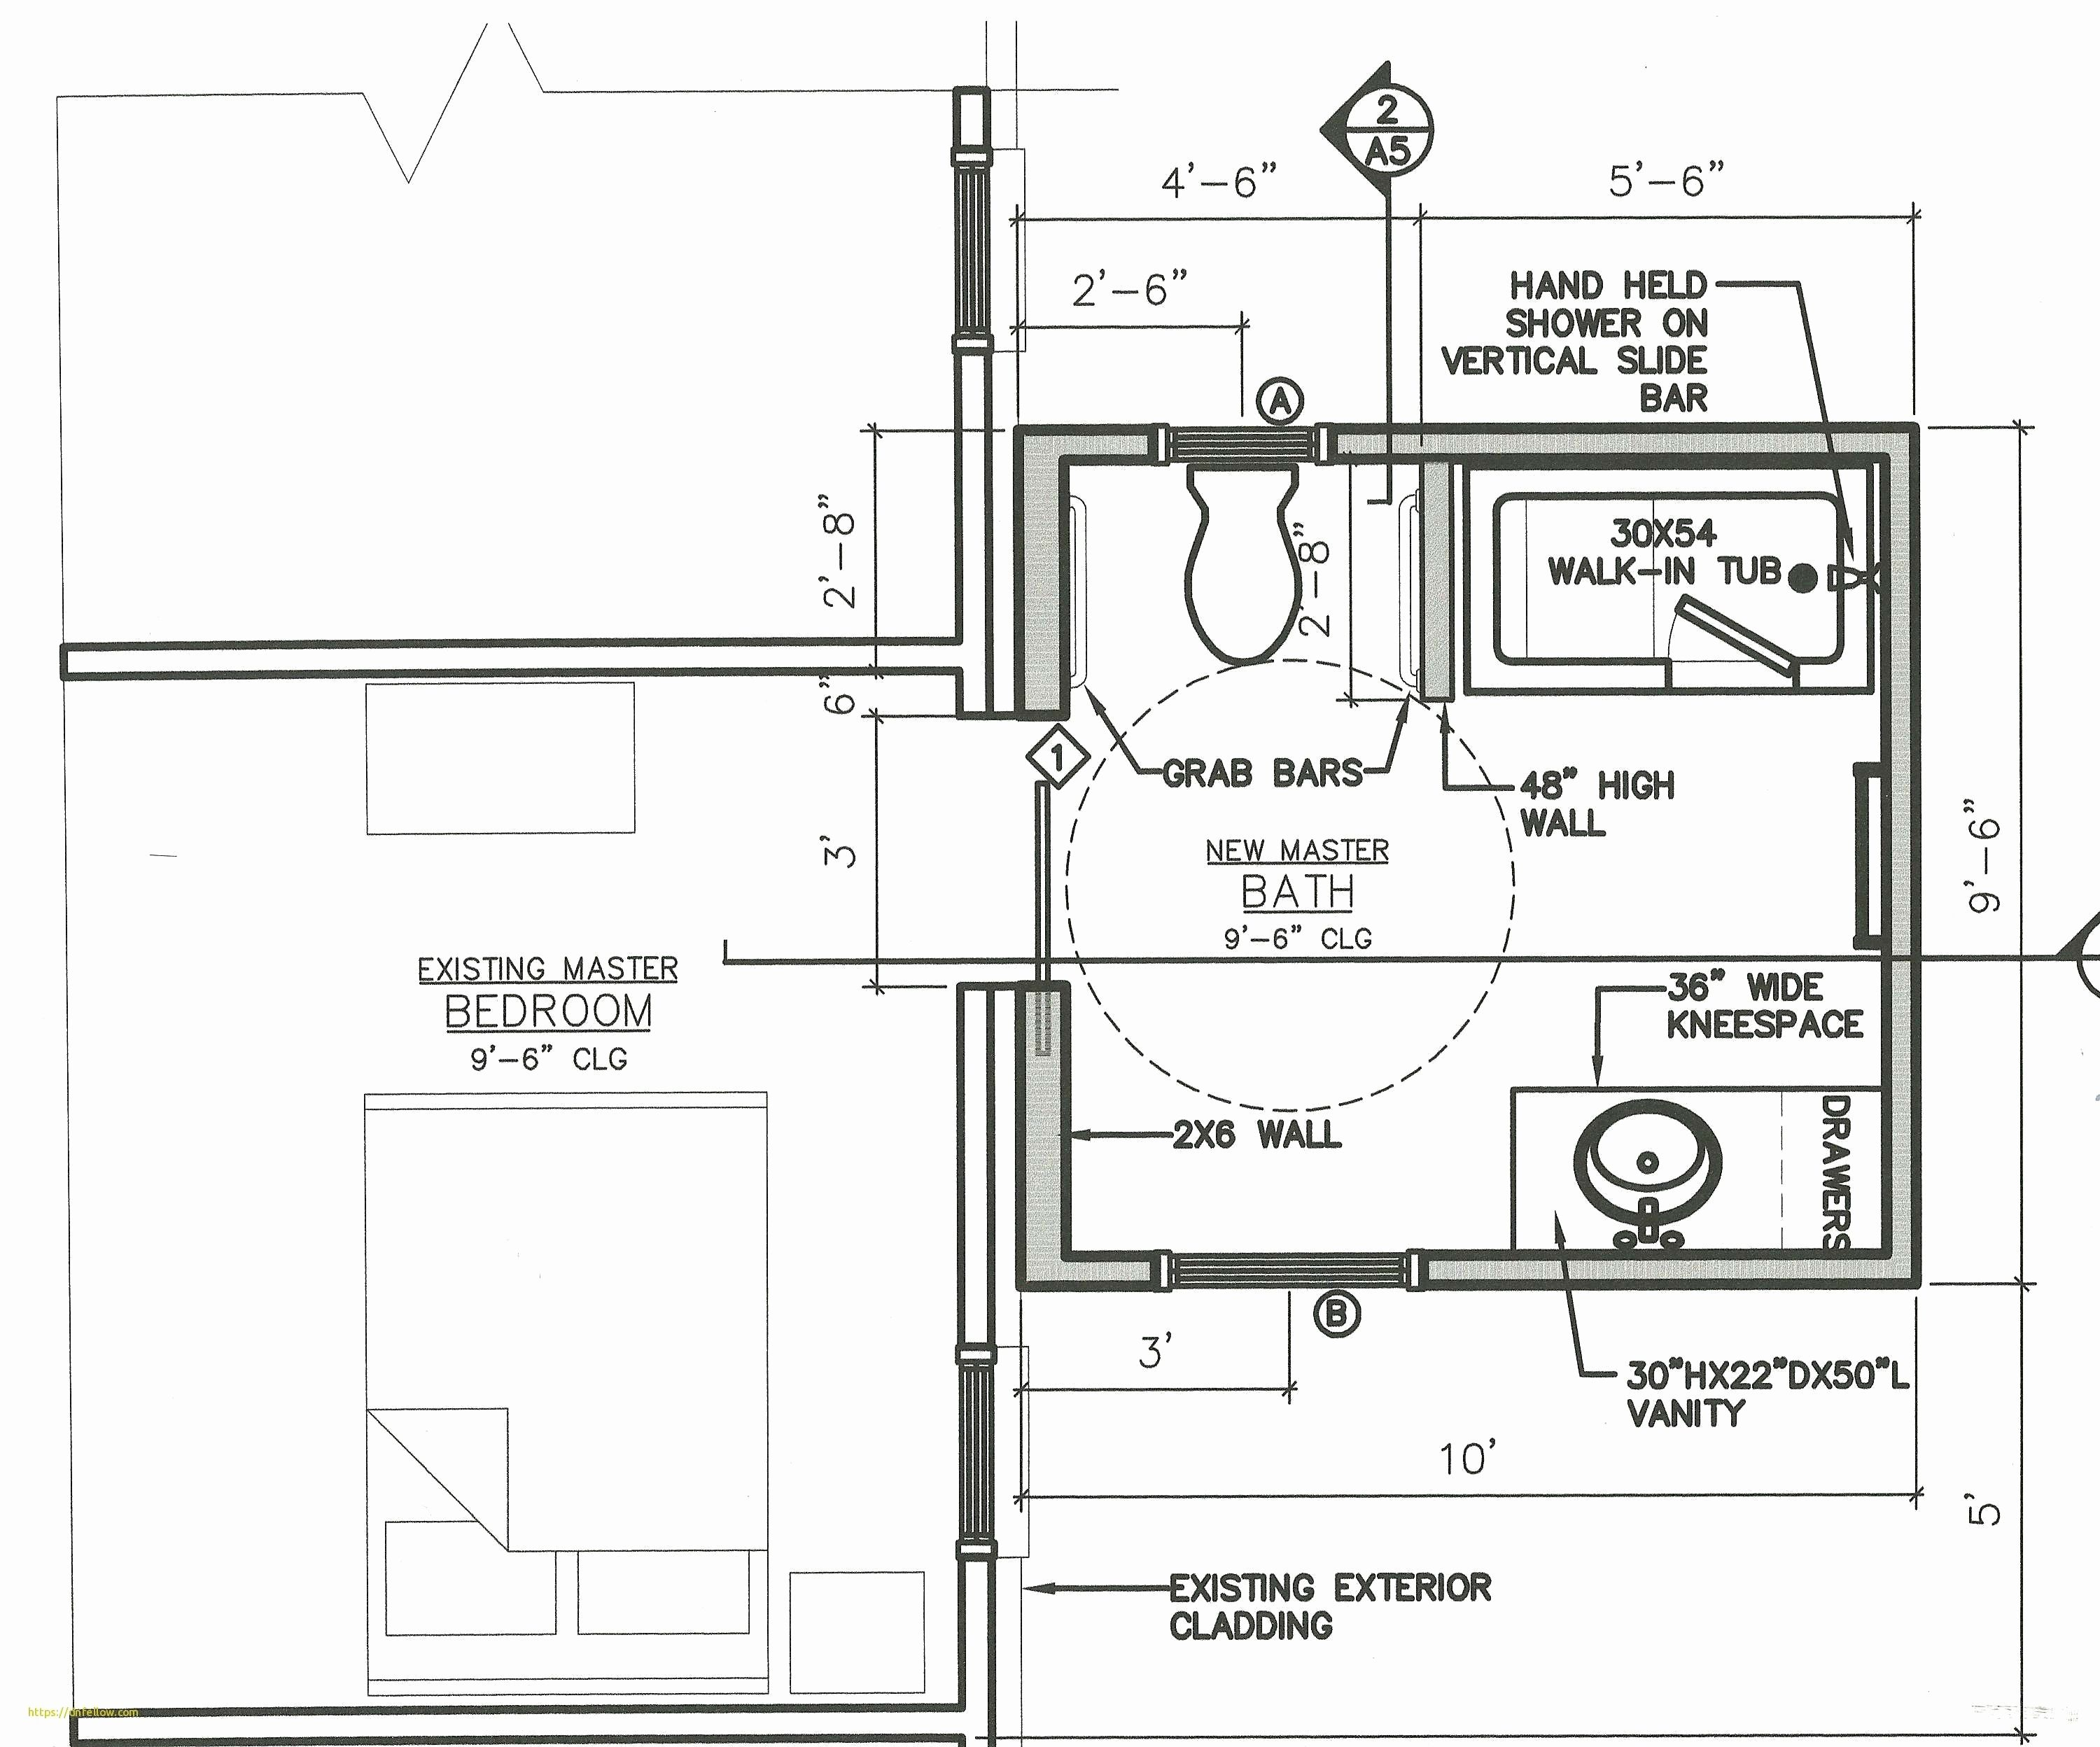 Residential Electrical Wiring Diagrams Fresh House Wiring Diagram In - Usb Headset 00Aa001 Wiring Diagram